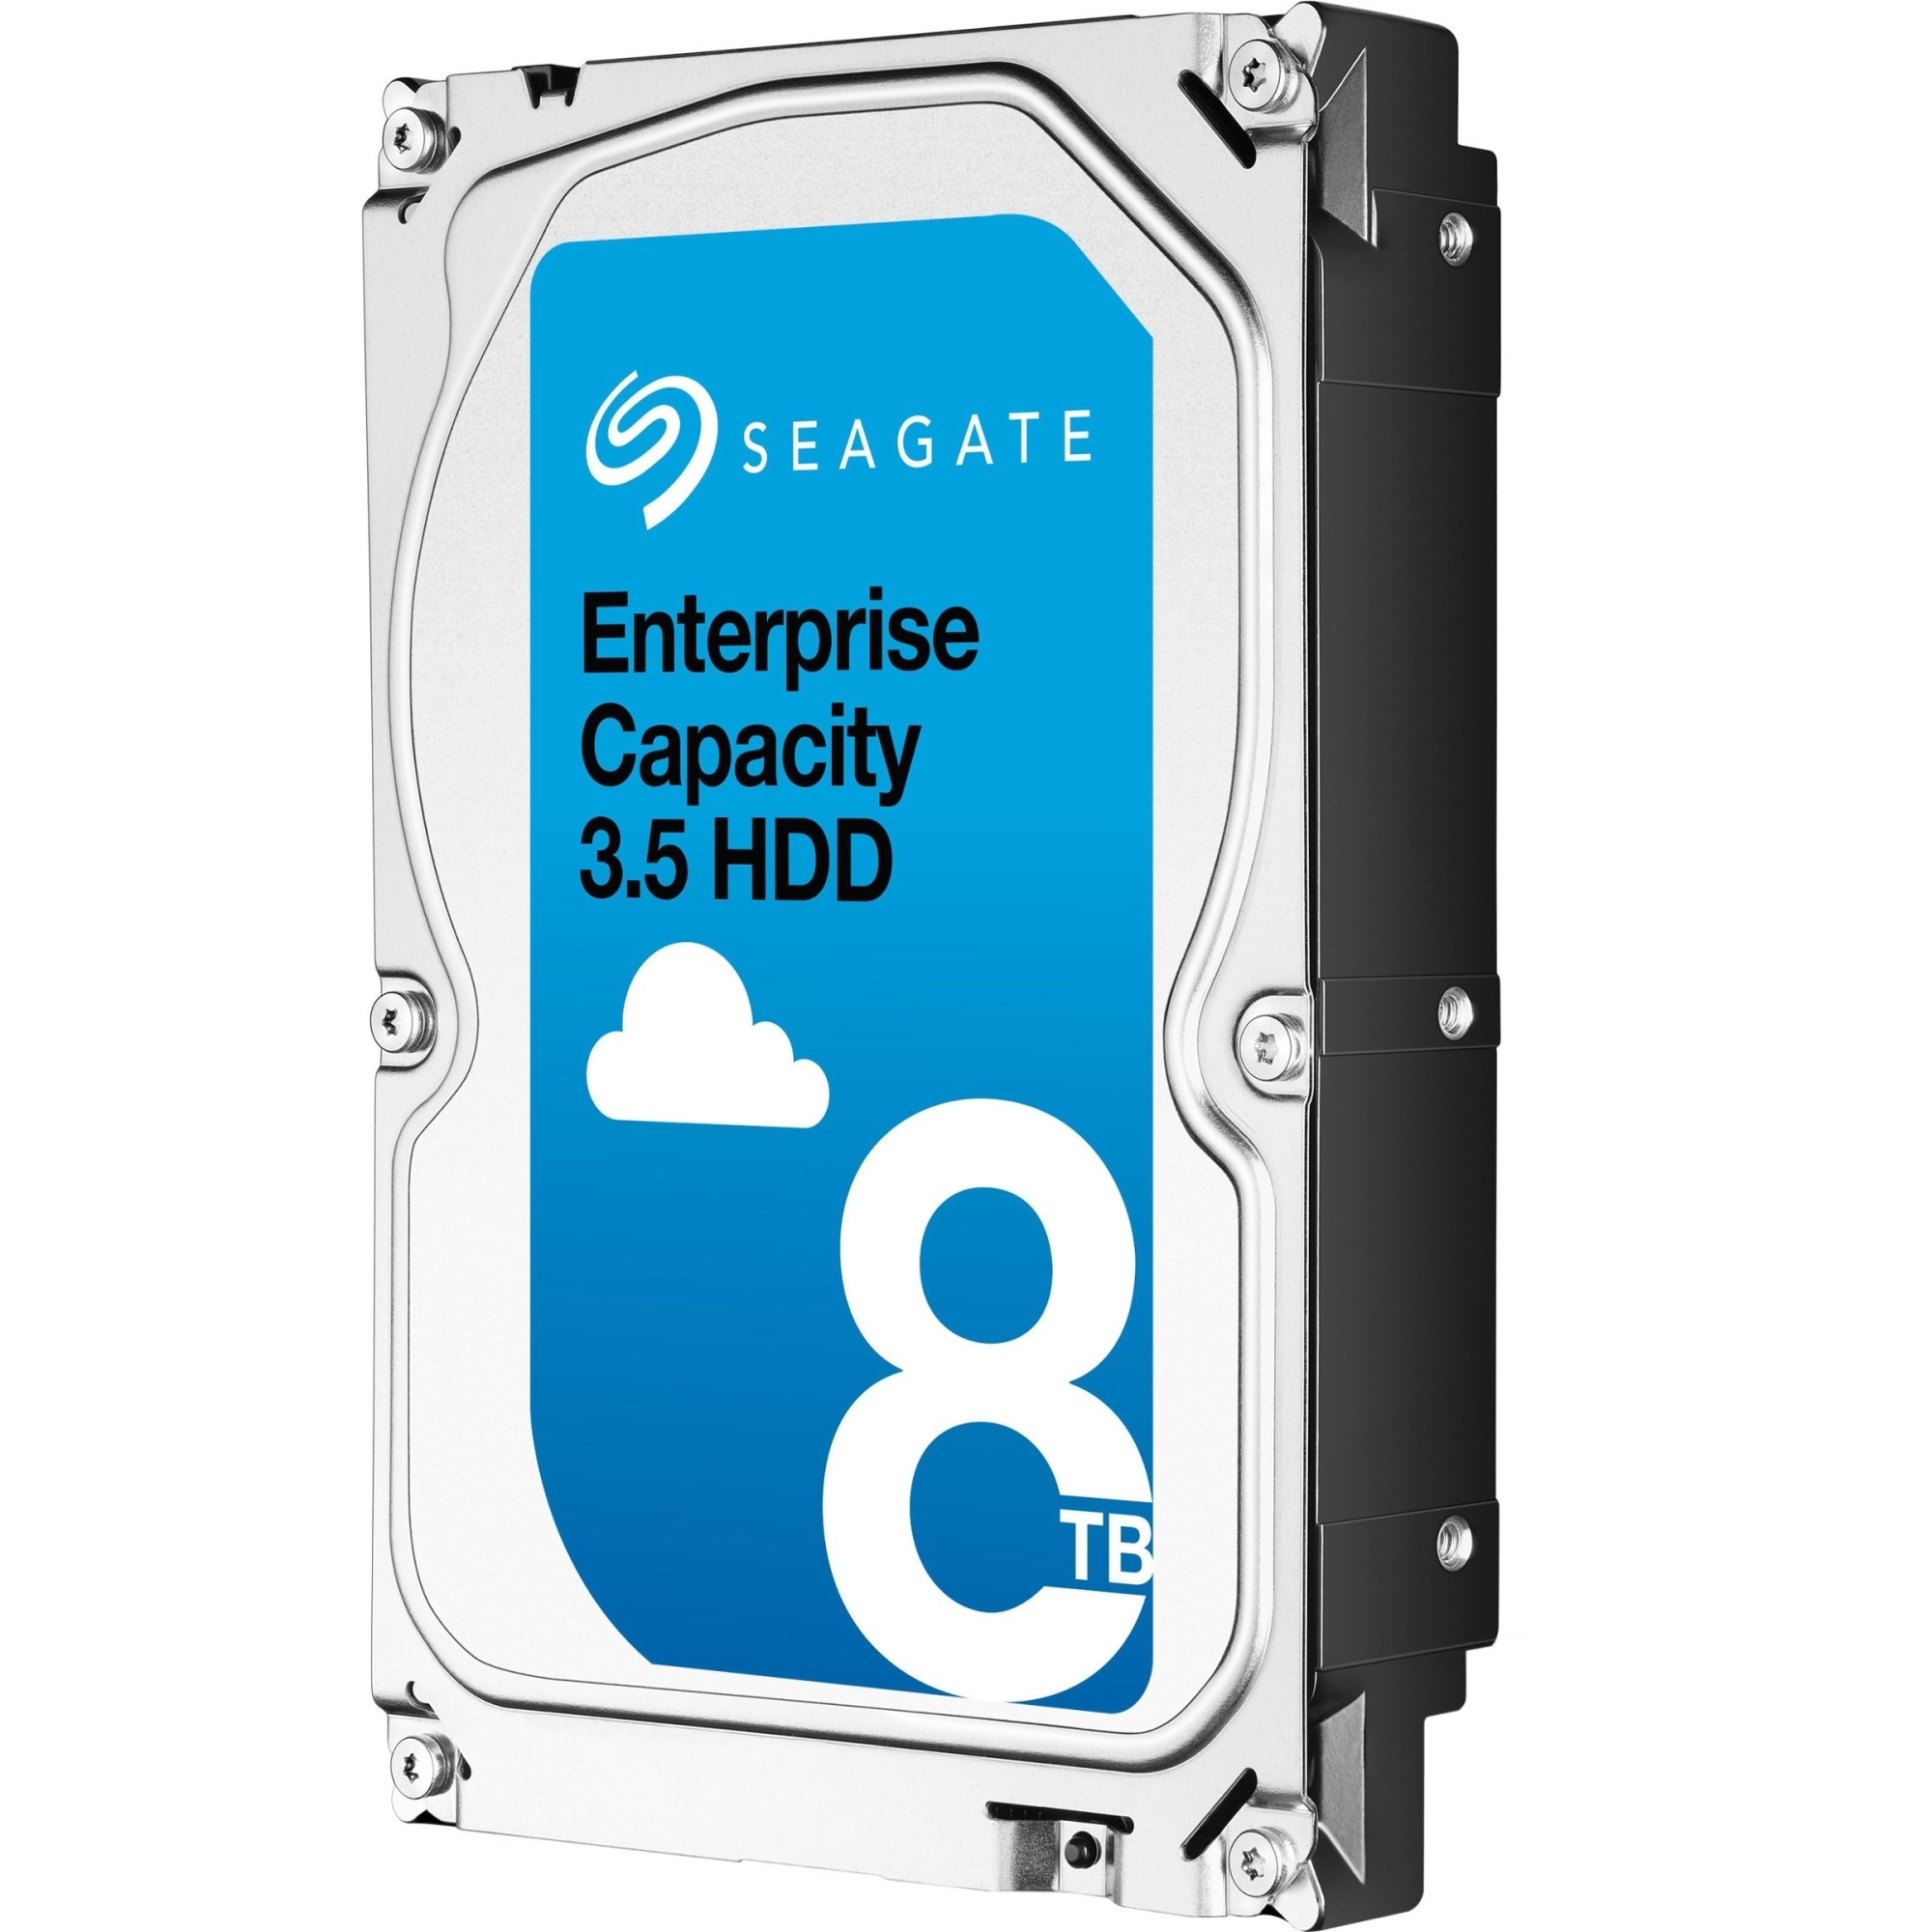 Enterprise Capacity 3.5 HDD - Hard drive - encrypted - 8 TB - internal - 3.5 inch - SAS 12Gb/s - 7200 rpm - buffer: 256 MB - Self-Encrypting Drive (SED)